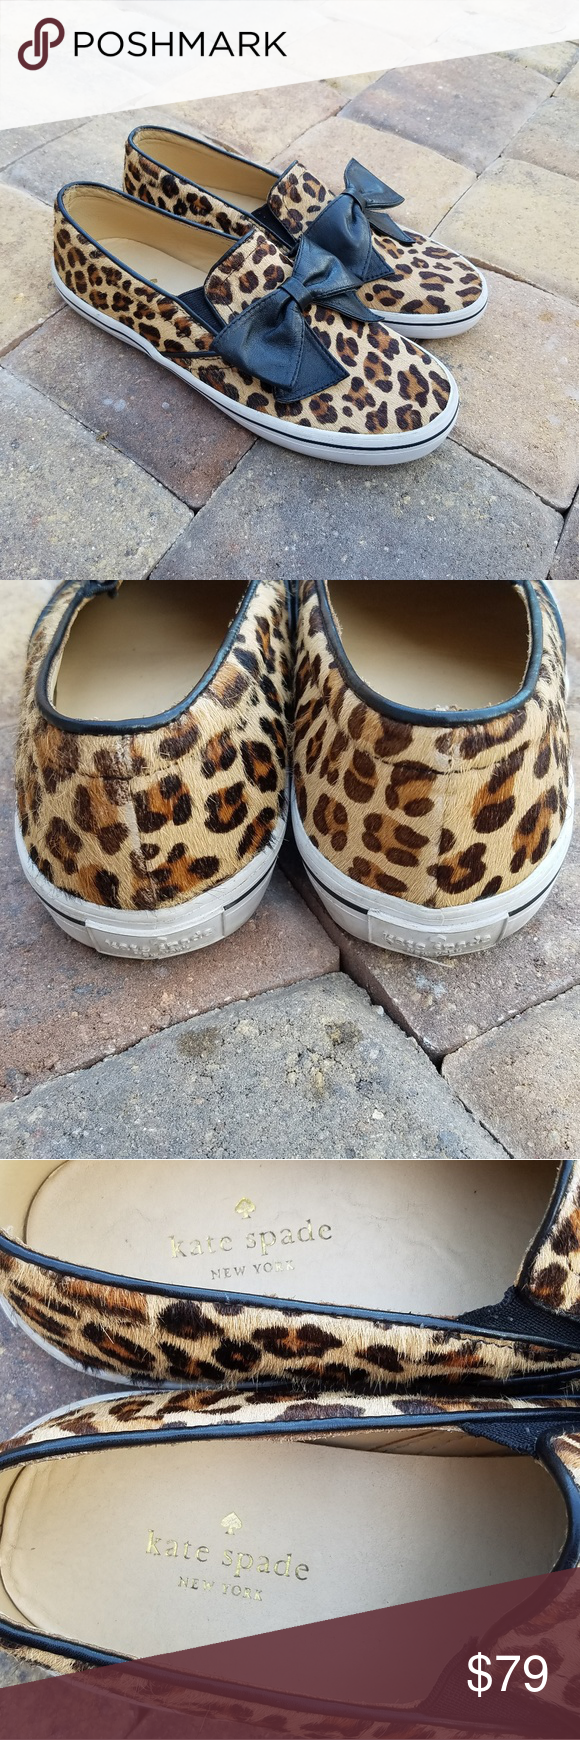 ab788684aa28 Kate Spade Delise Leopard Black Bow Sneakers in 2018